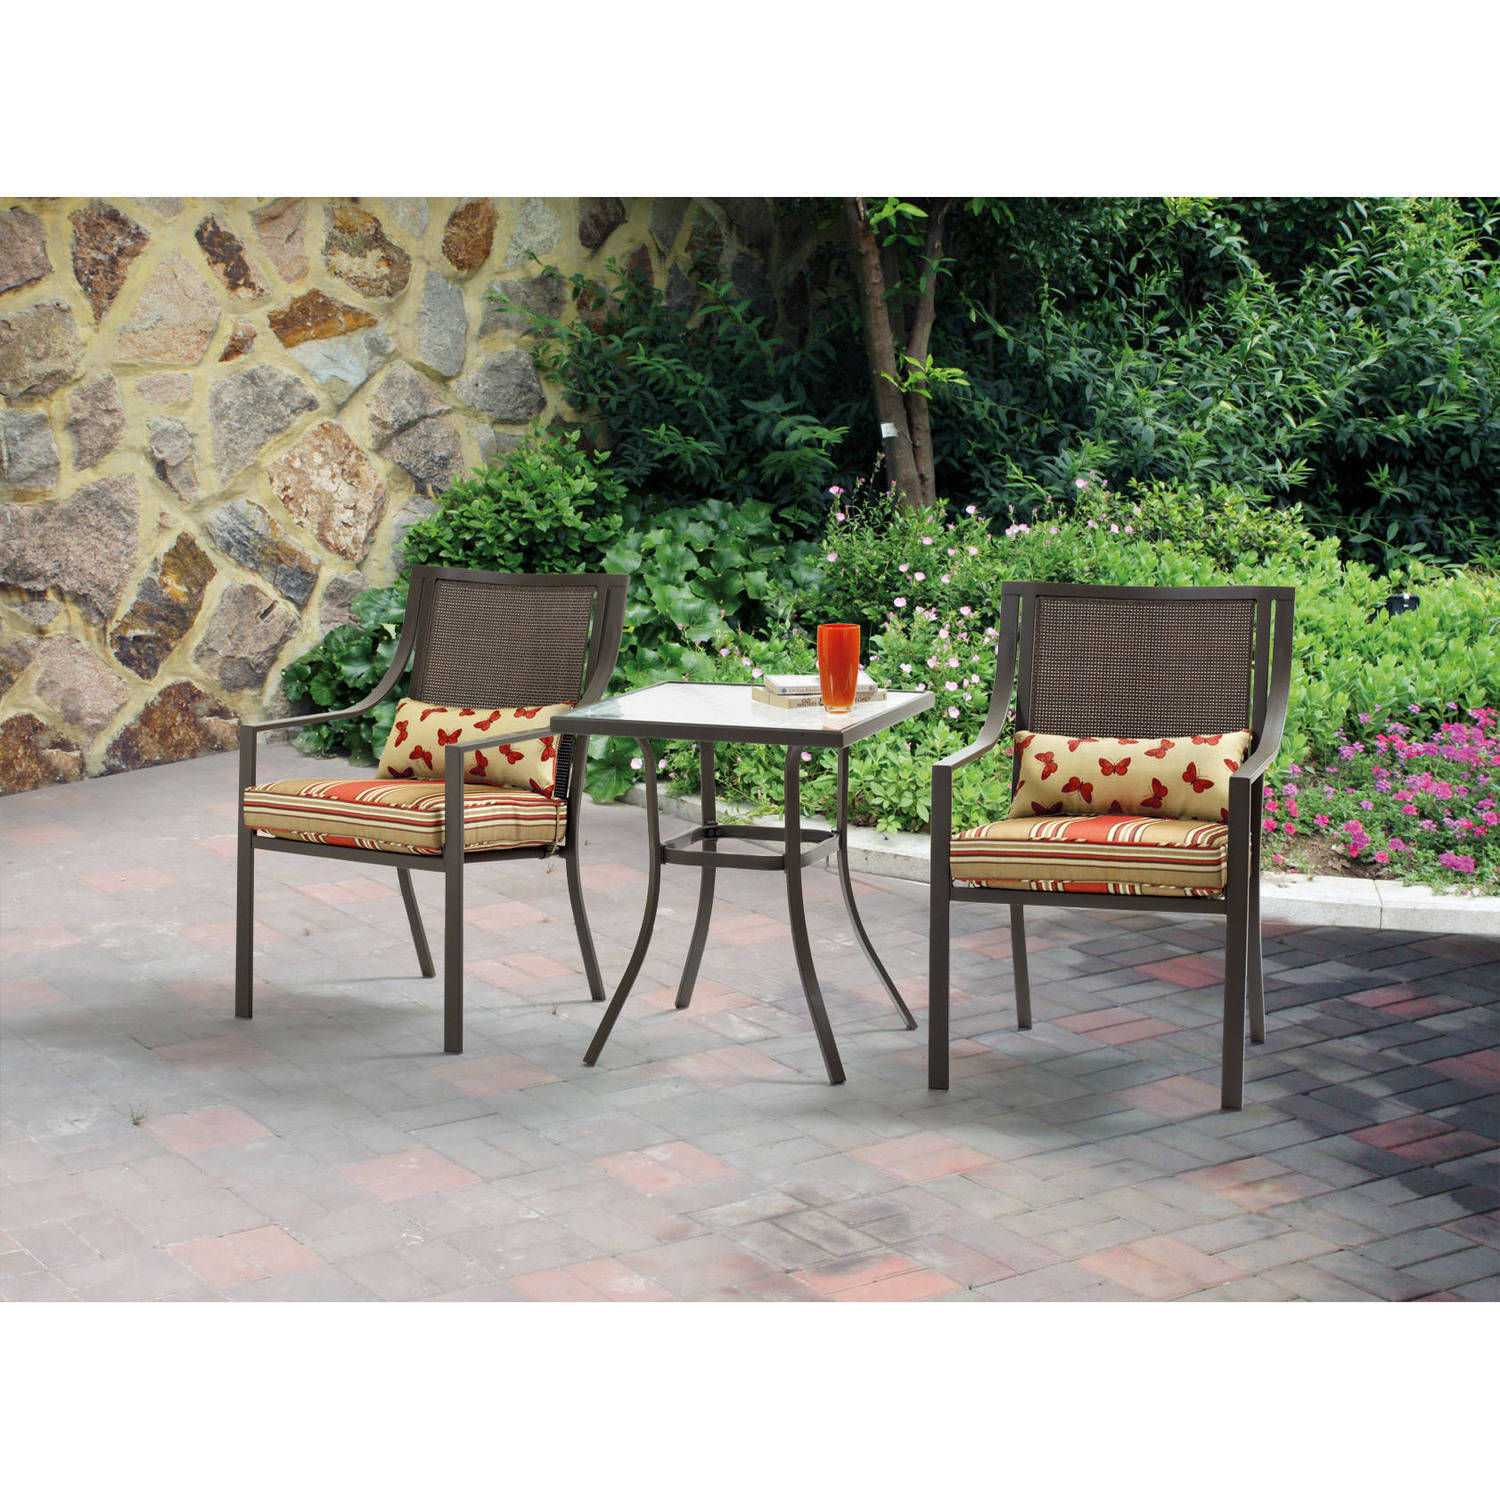 Backyard Chairs Details About Outdoor Bistro Set 3 Piece Patio Chairs Table Furniture Garden Seat